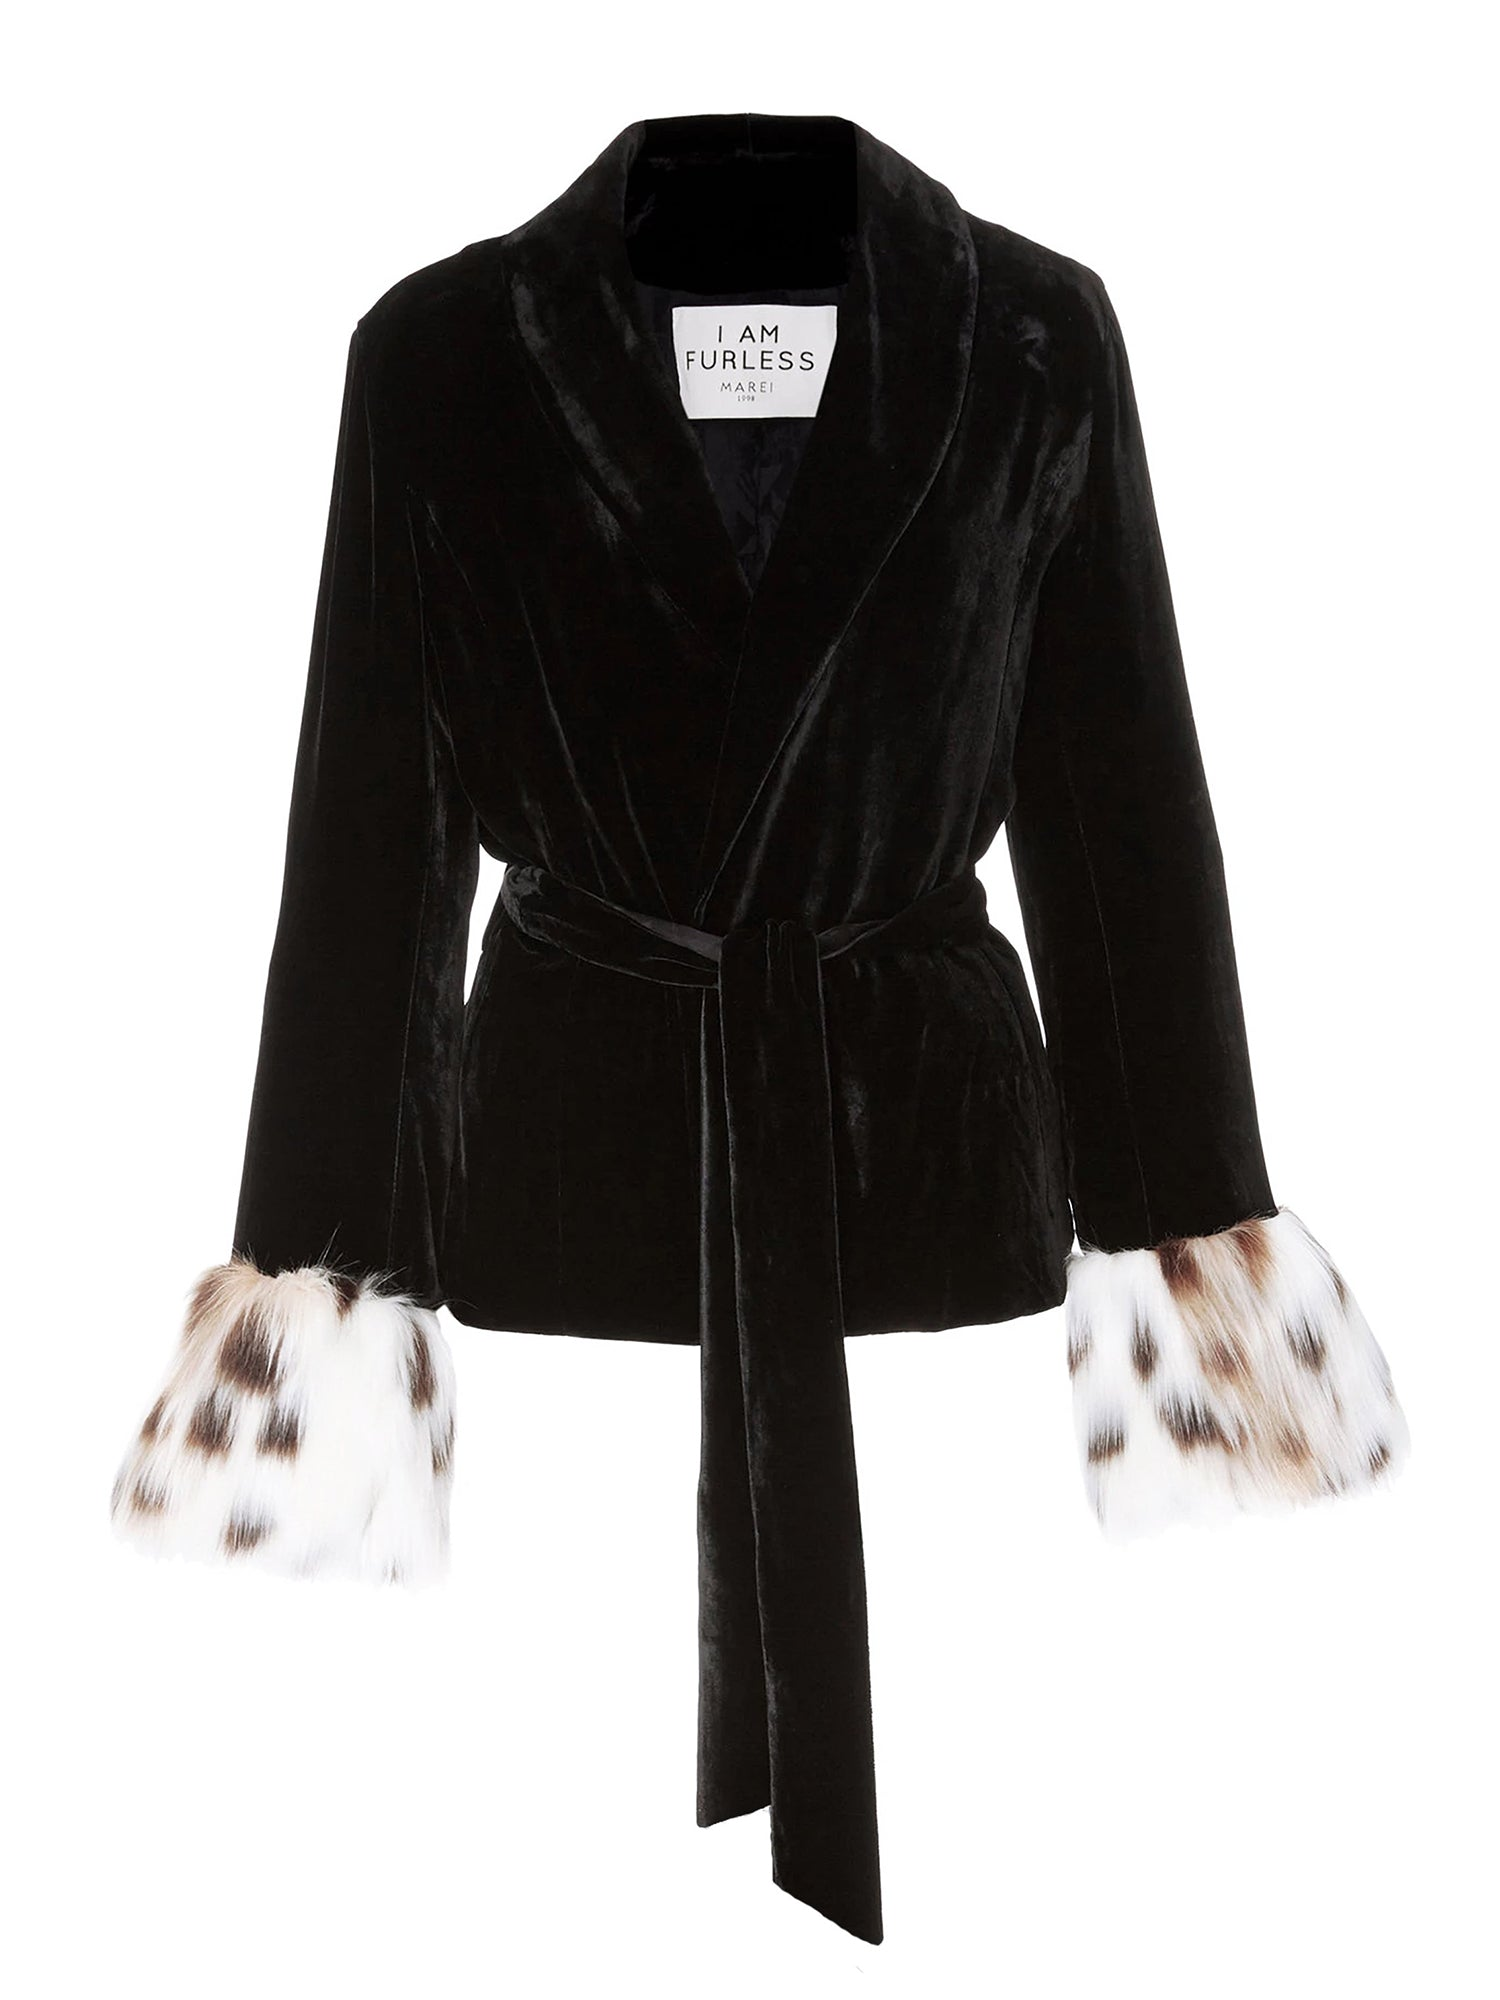 A Packshot Of Marei1998's Clarkia Silk Velvet Jacket In Black Color. Featuring Lapel Collar and Bell Sleeves, Trimmed With Contrasting Linca Color (Delicate Leopard Design) Faux Fur. Matching Tip-up Belt To Define The Waist. Front View. Resort 2020 Collection - Furless Friendship.